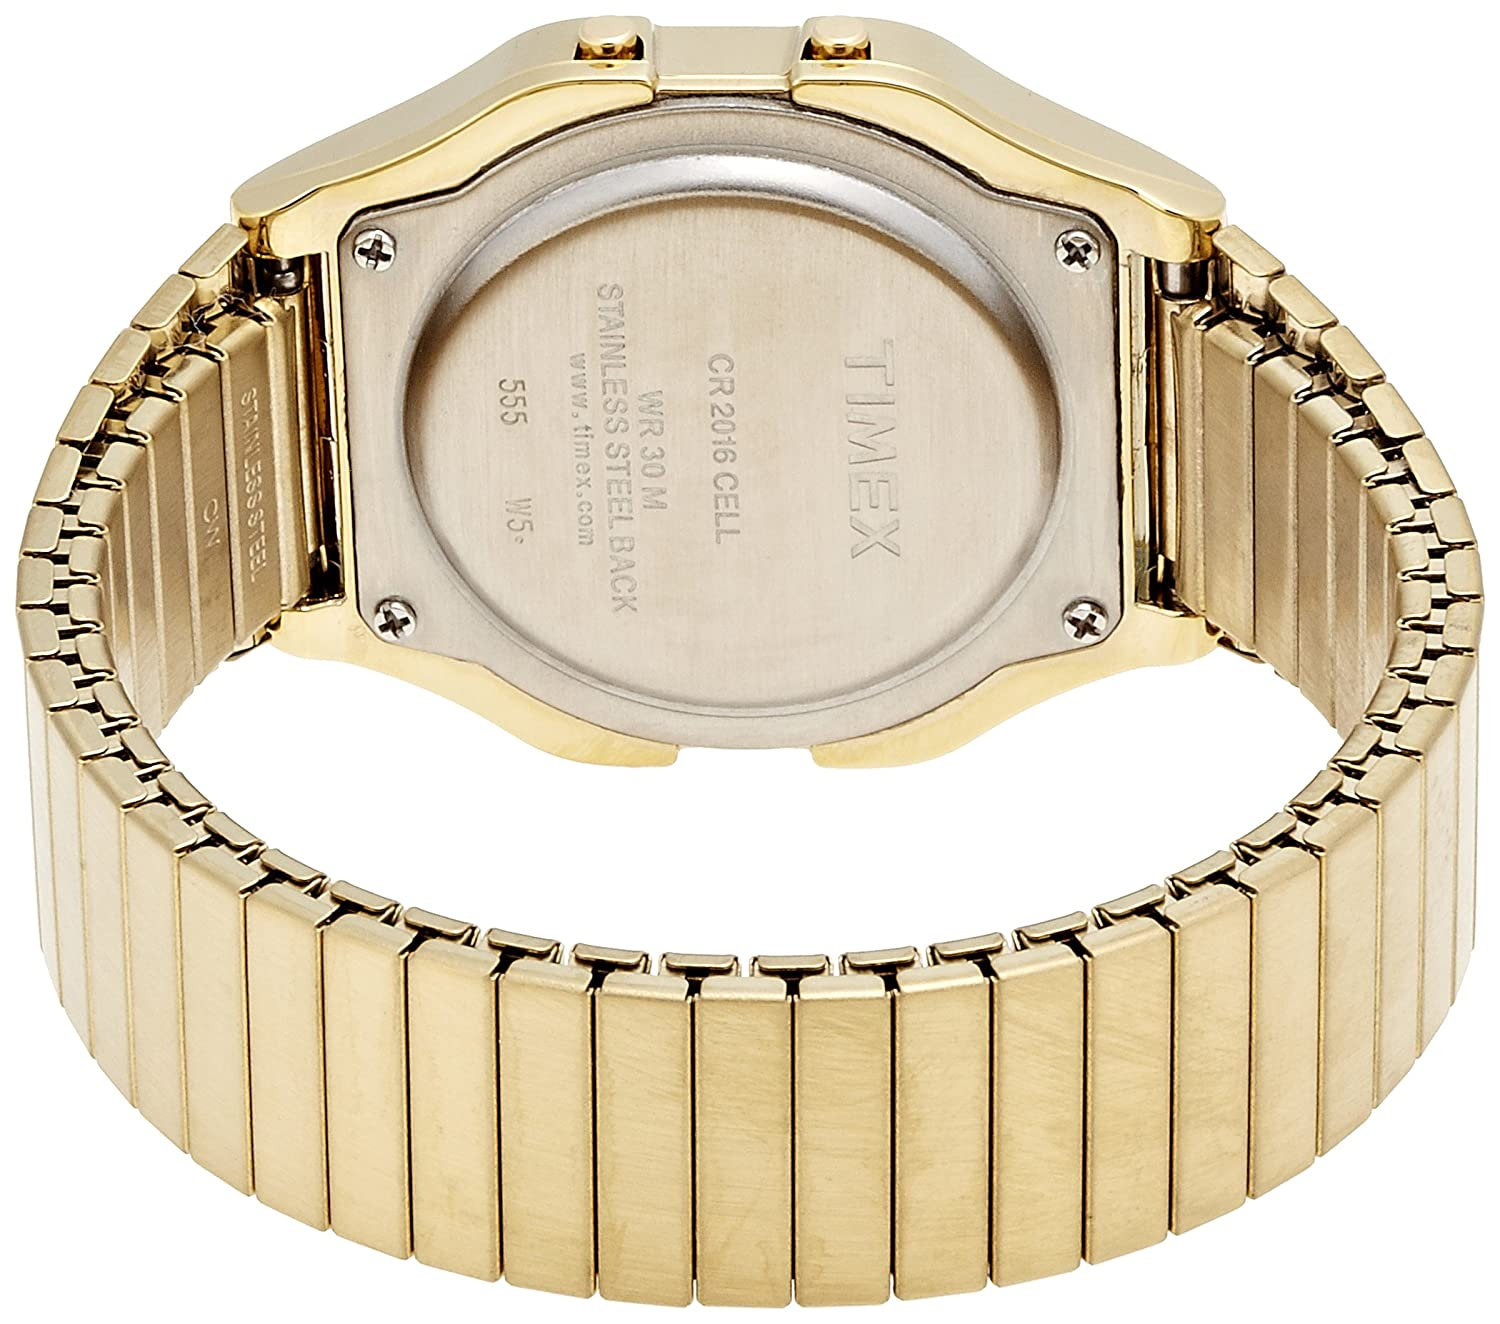 f5daa600aeb5 Amazon.com  Timex Men s T78677 Classic Digital Gold-Tone Stainless Steel  Expansion Band Watch  Timex  Watches